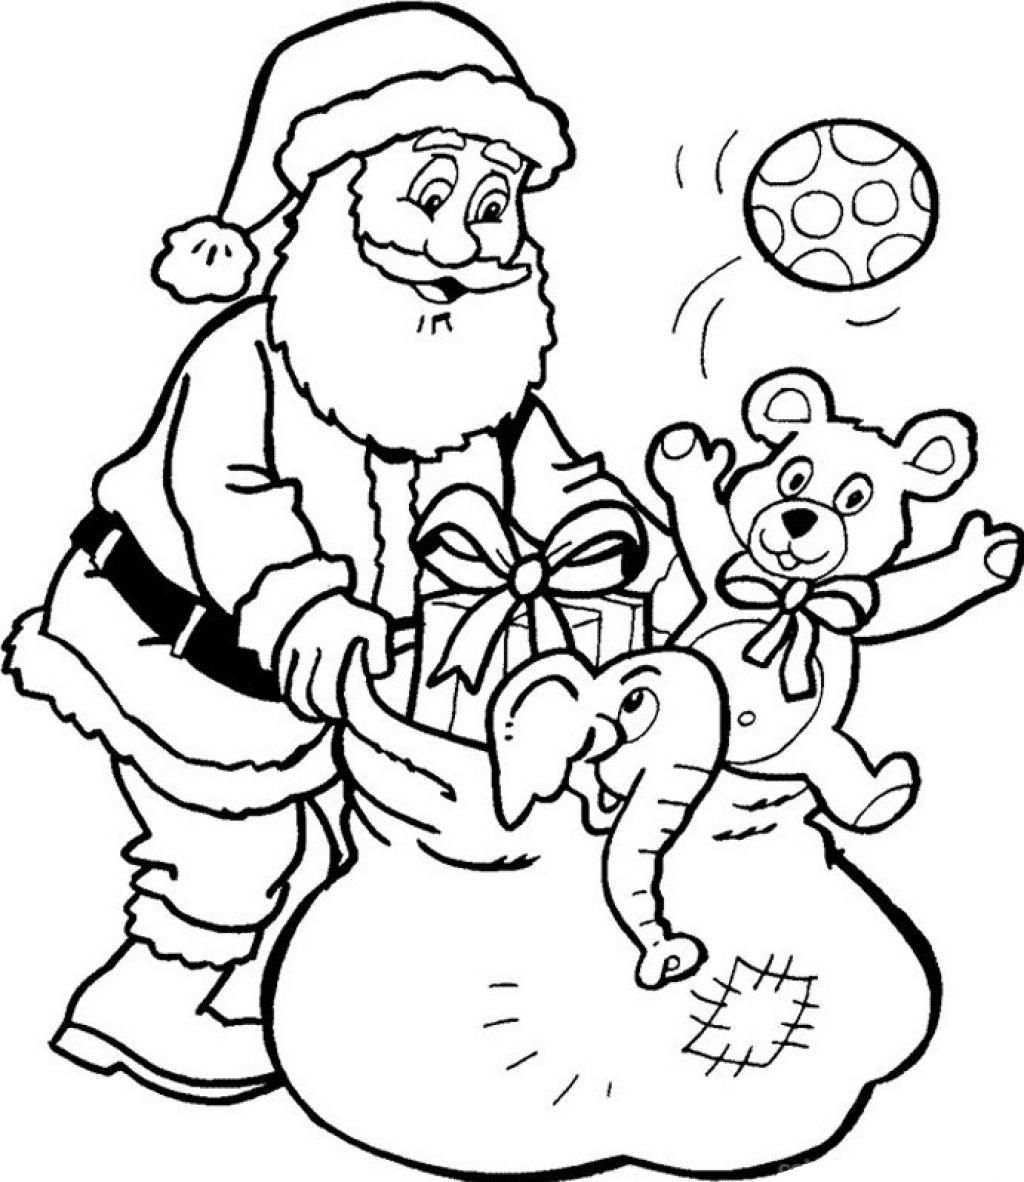 Santa Christmas List Coloring Page With Claus And Presents Printable Pages Some